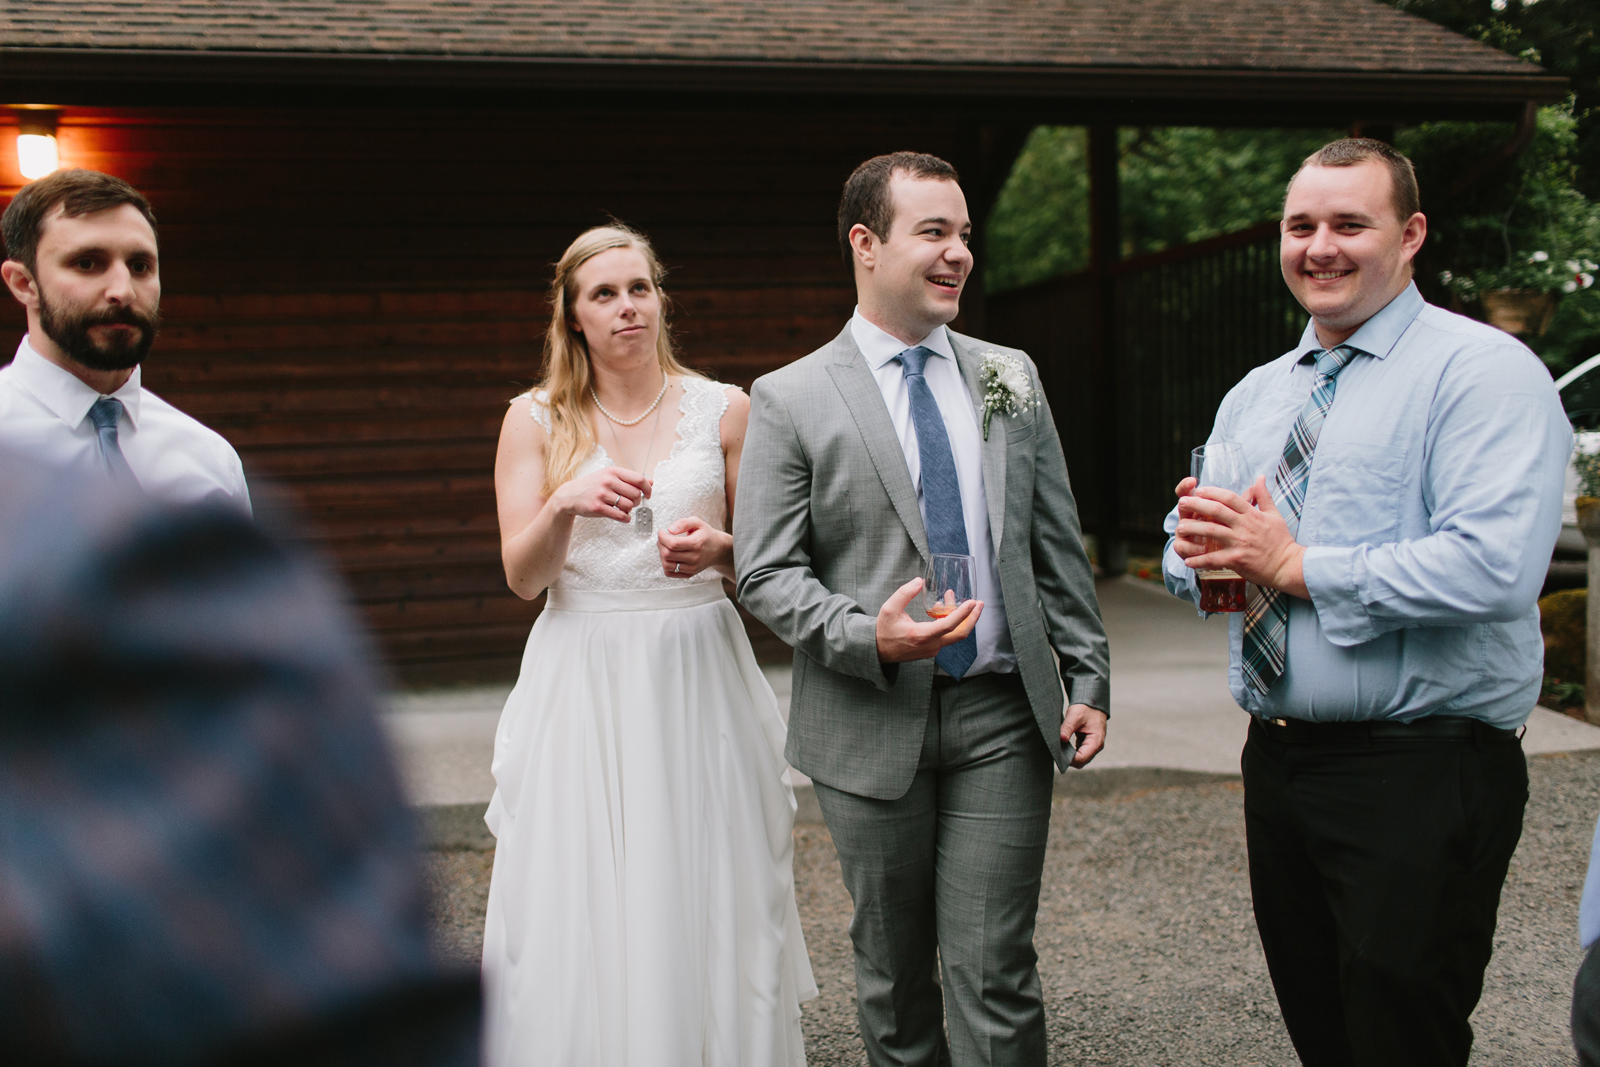 The bride and groom chat during wedding reception at Bridal Veil Lakes in Corbett, Oregon